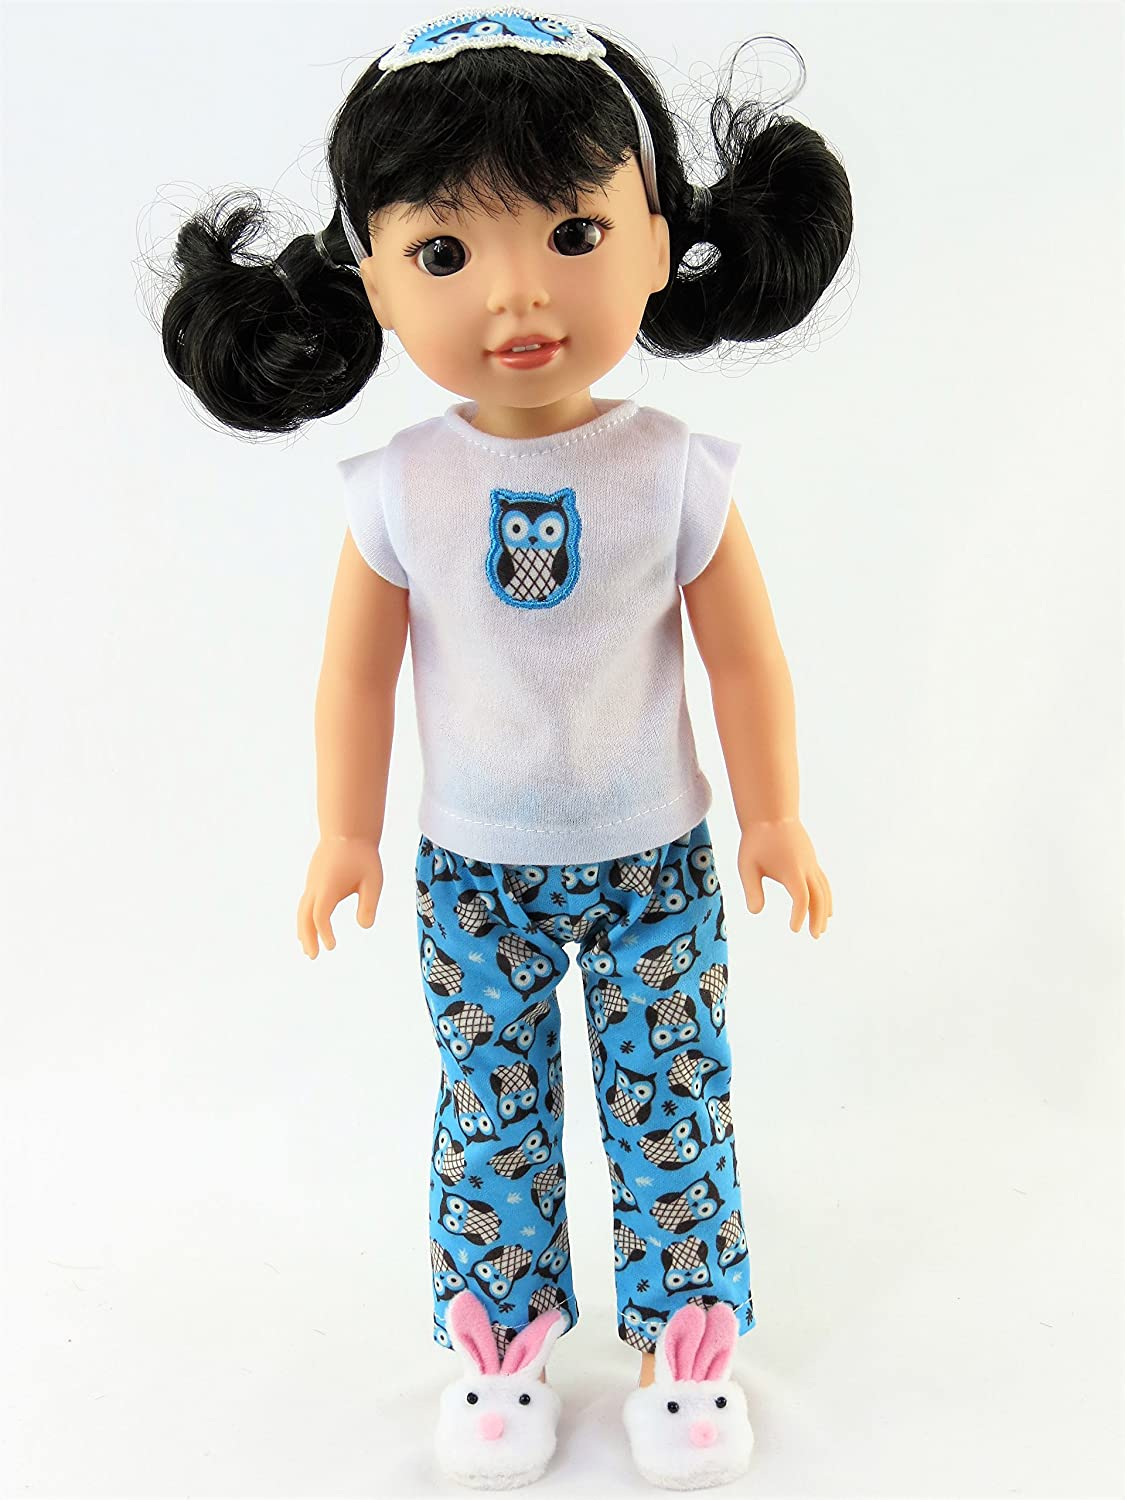 Unicorn Pajamas for Wellie Wisher Dolls 14.5 Inch Doll Clothes